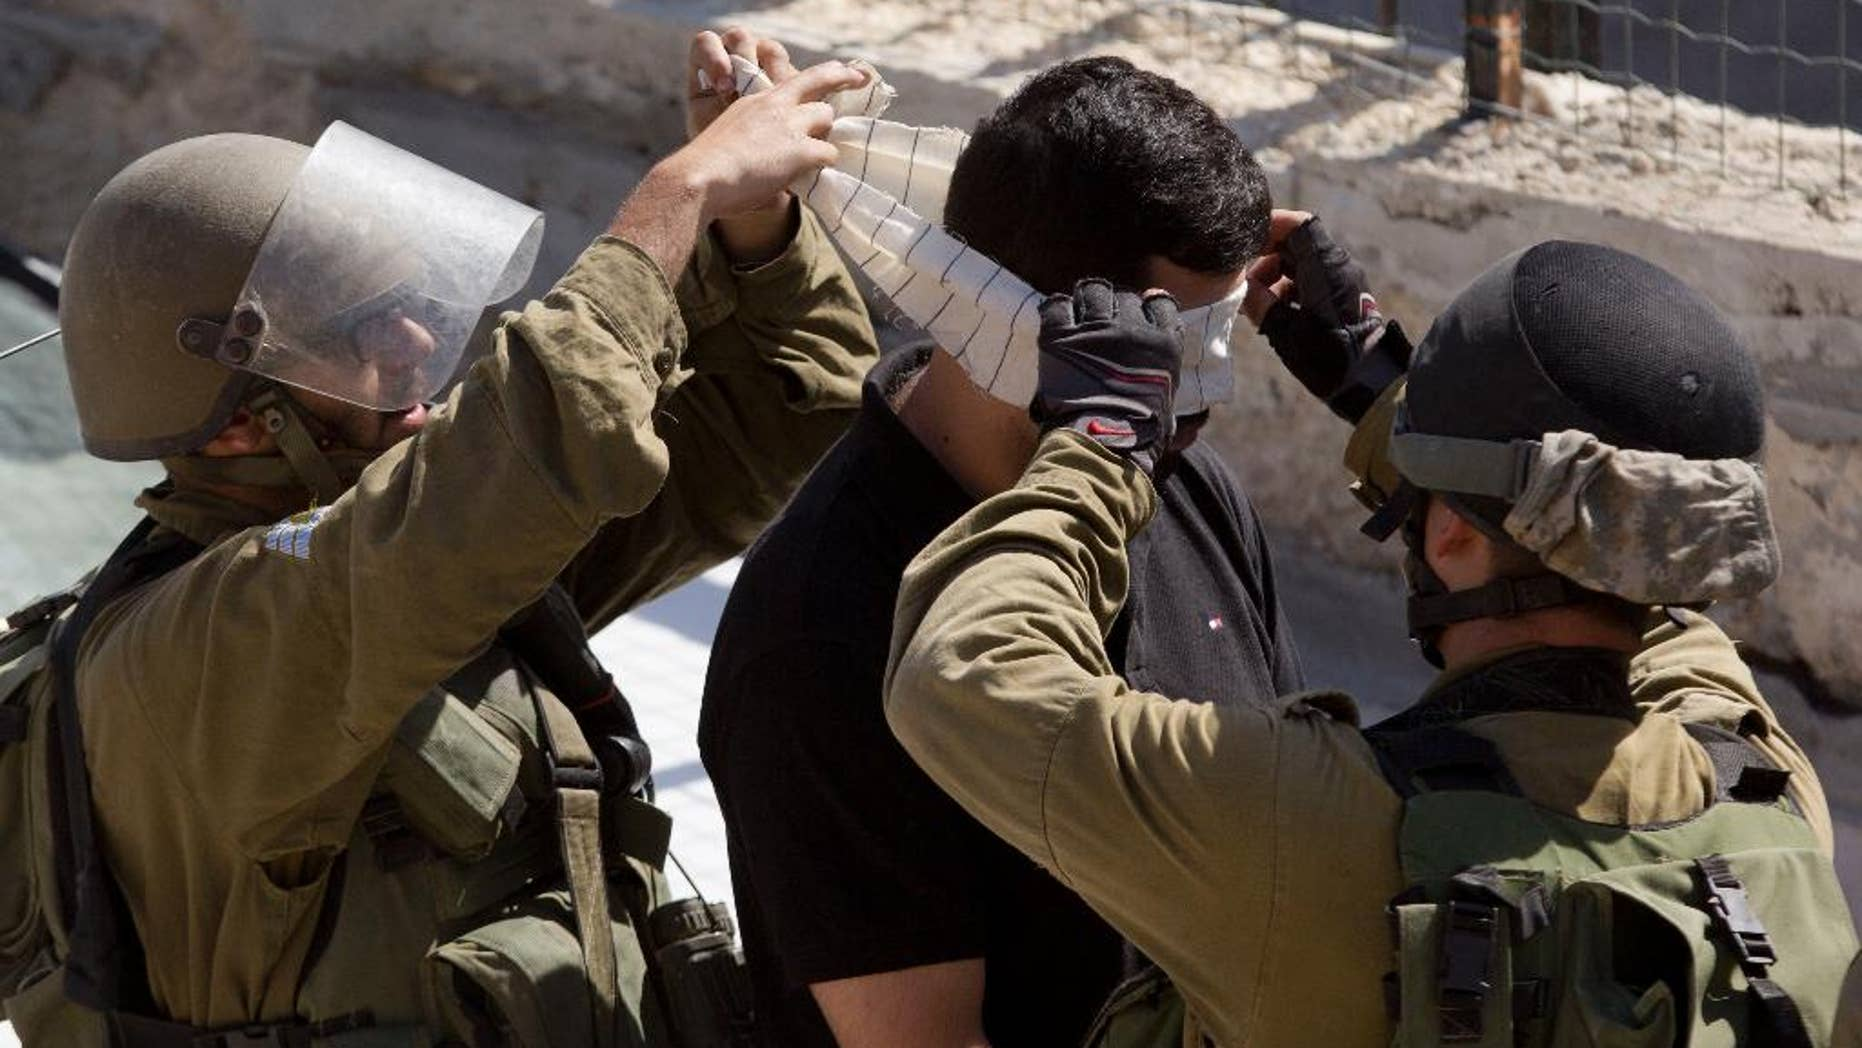 Israeli troops arrest a Palestinian during clashes after the funeral of Ibrahim Awad, 28, in the village of Beit Ummar near the West Bank city of Hebron, Thursday, Sunday, Oct. 11, 2015. Awad died of his wounds on Saturday after being shot by Israeli troops during a protest last week. (AP Photo/Majdi Mohammed)